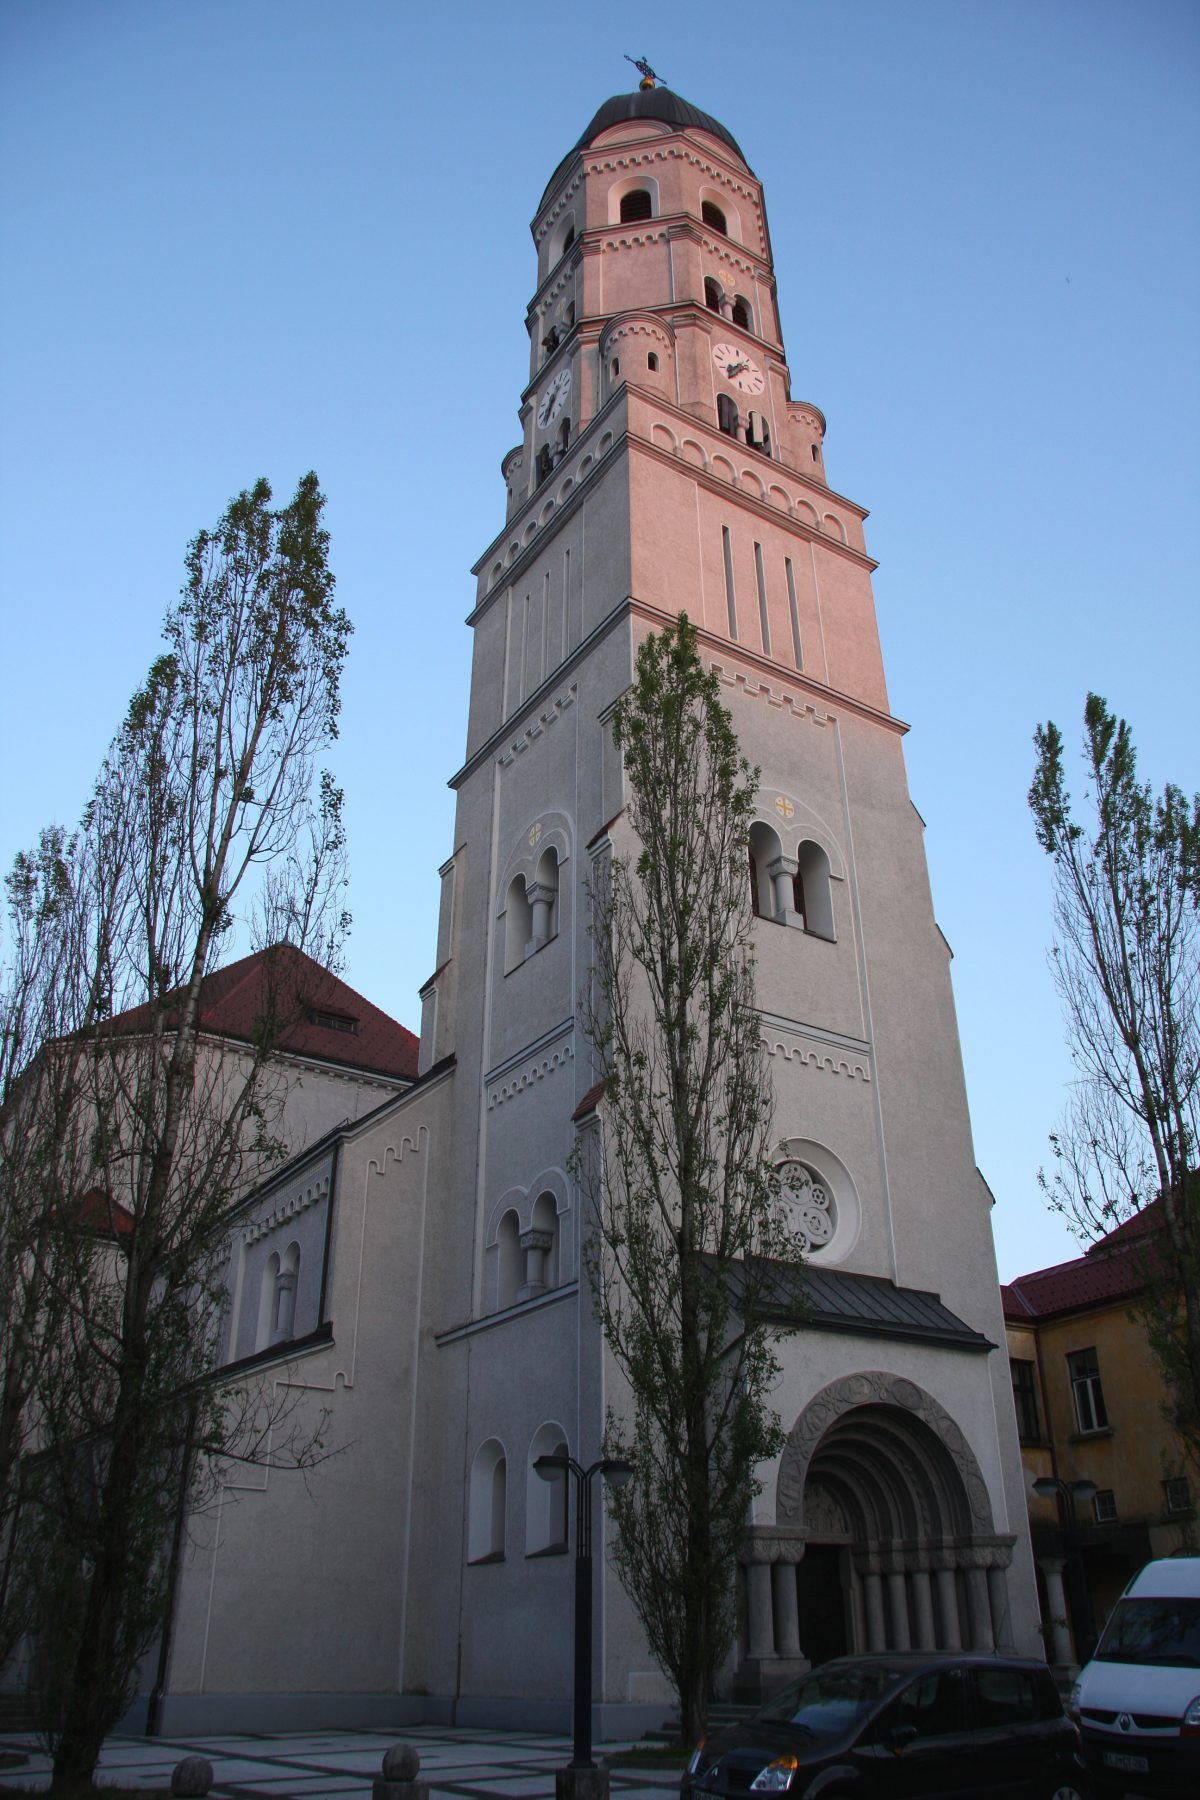 SAINT JOSEPH CHURCH POLJANE SLOVENIA